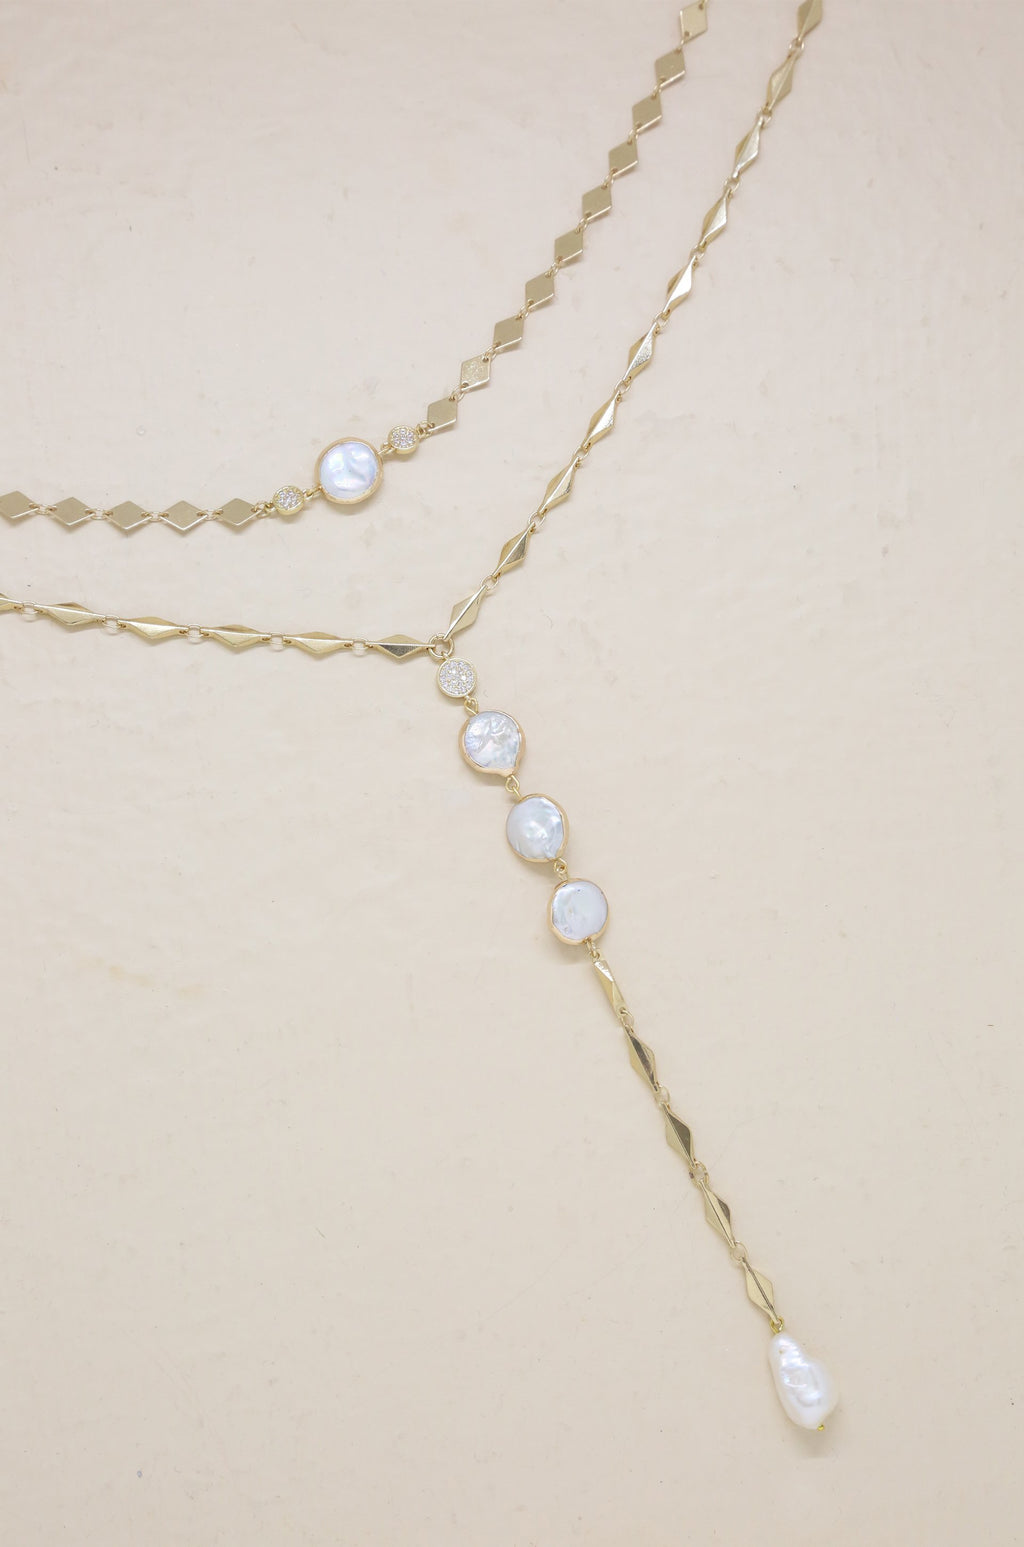 2pc 'Summer Dreamin' Freshwater Pearl Necklace